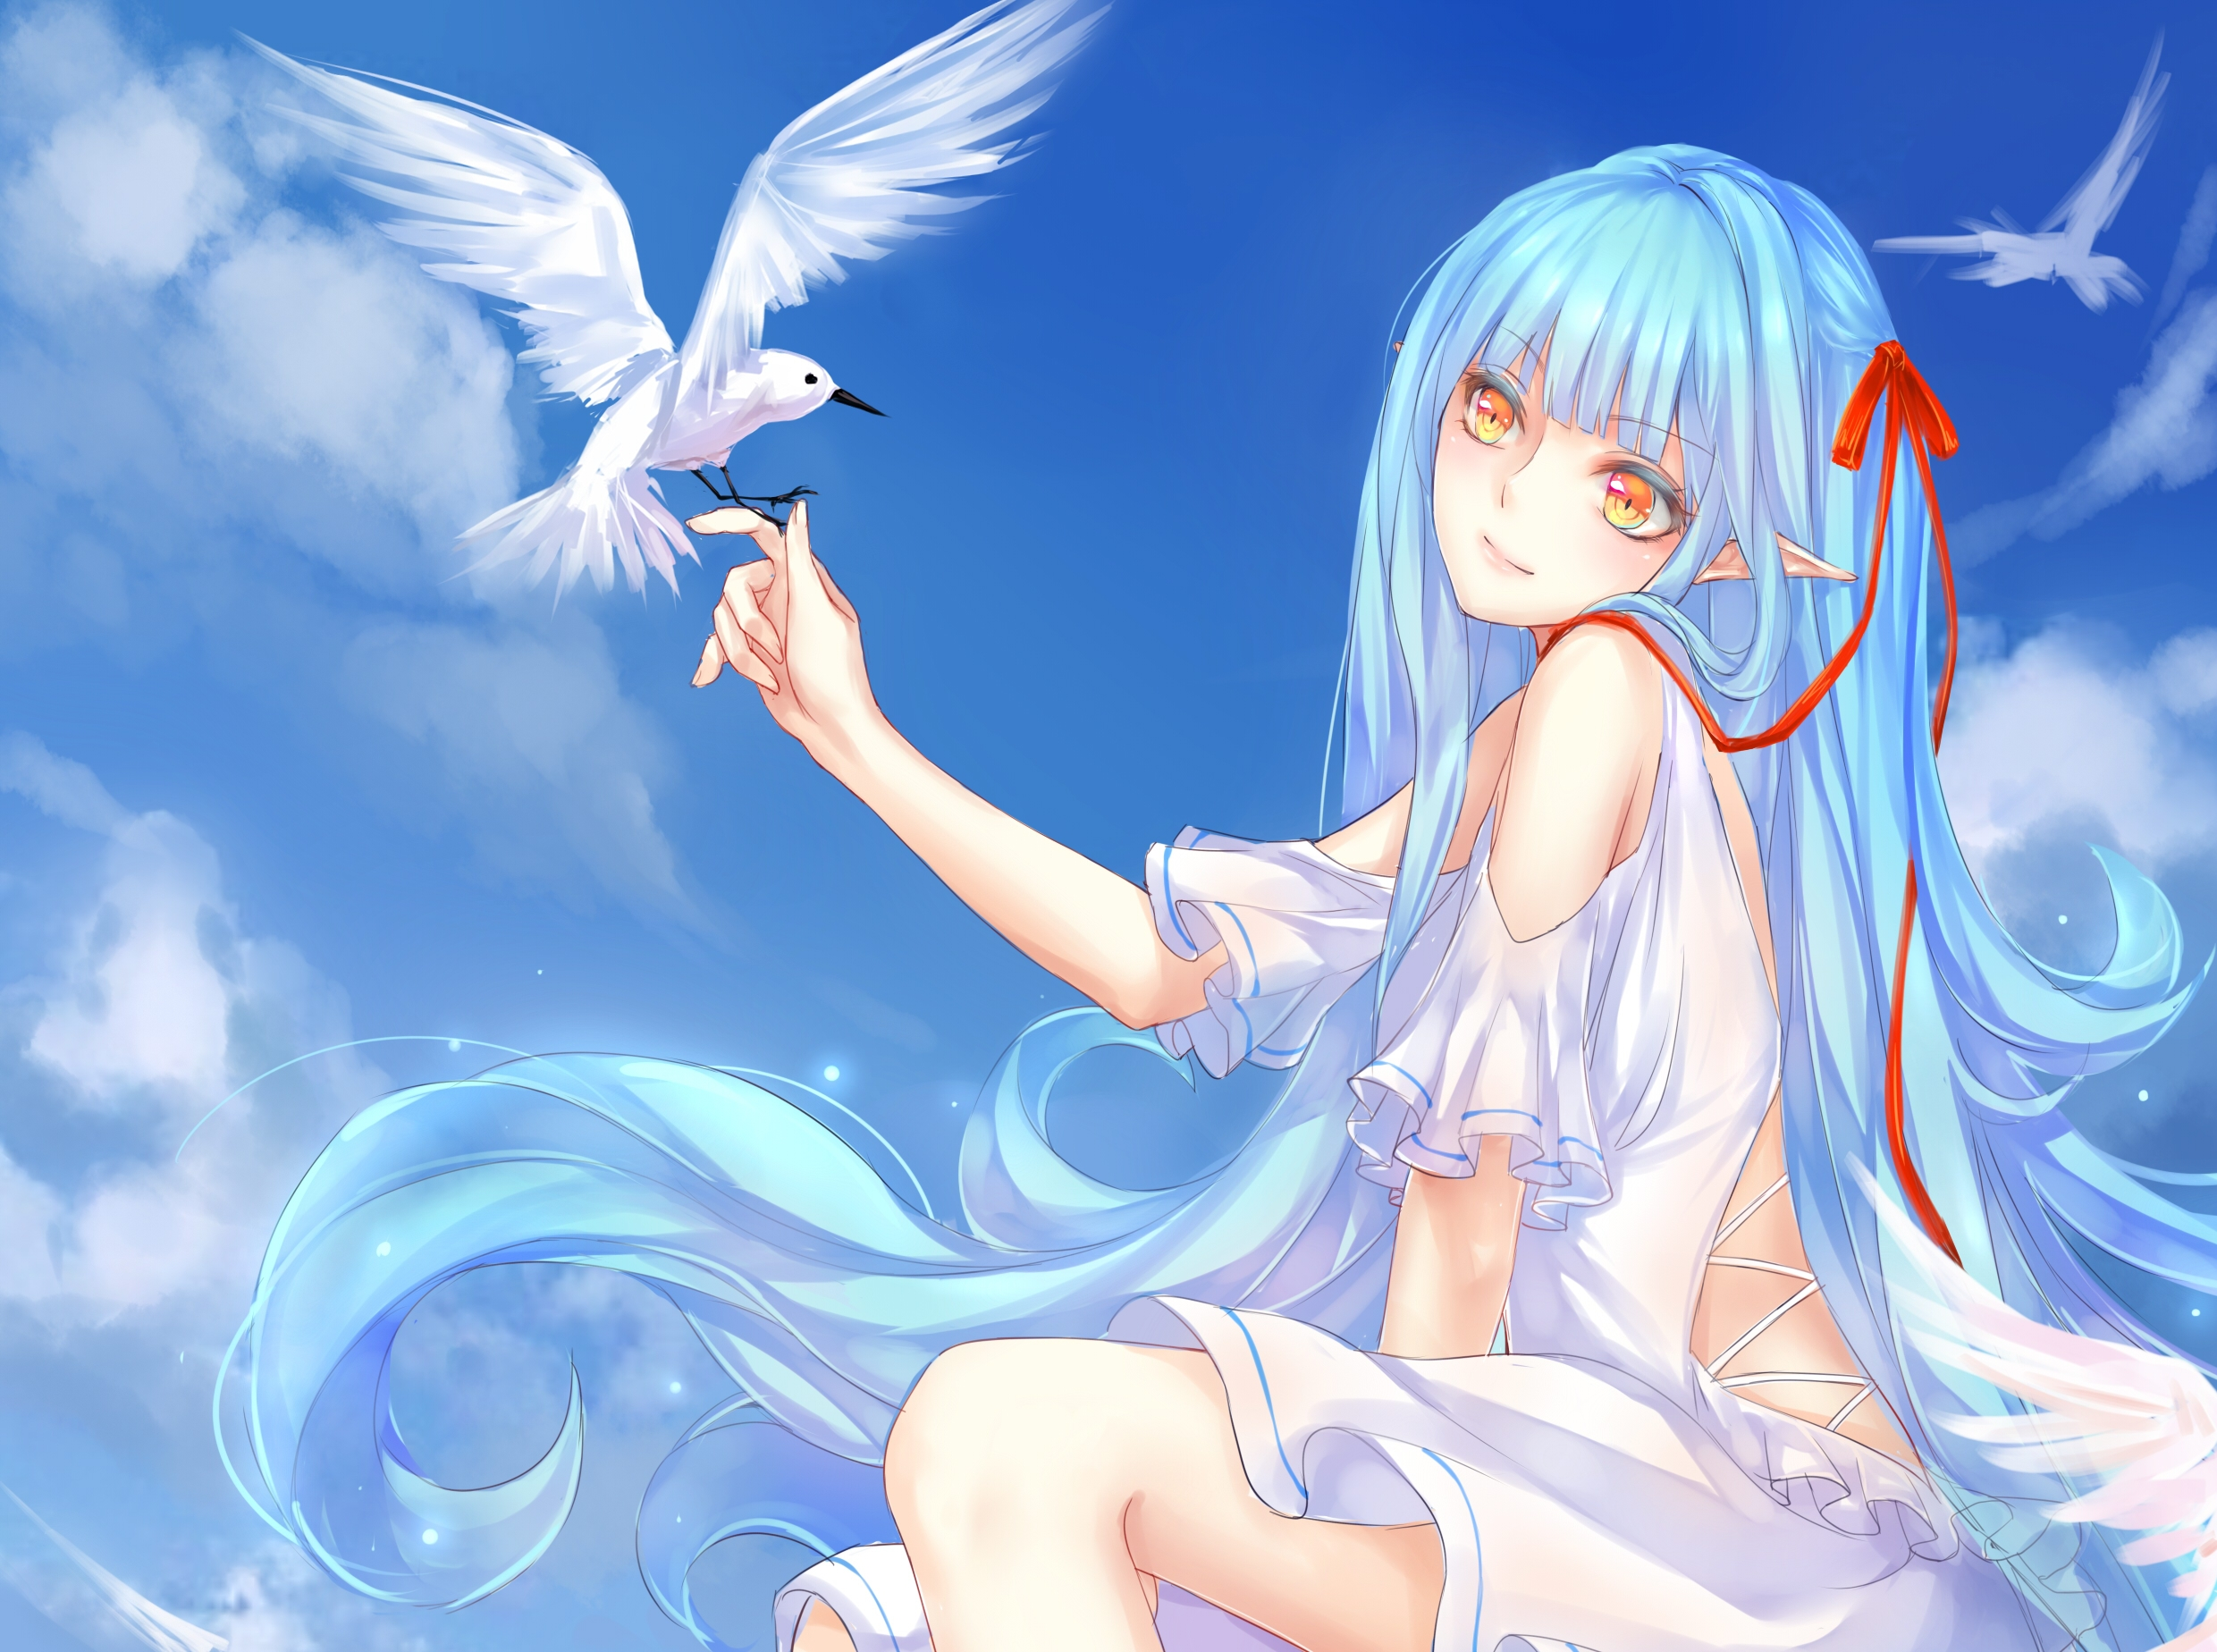 Anime Art Viii Hd Wallpaper Background Image 2480x1848 Id